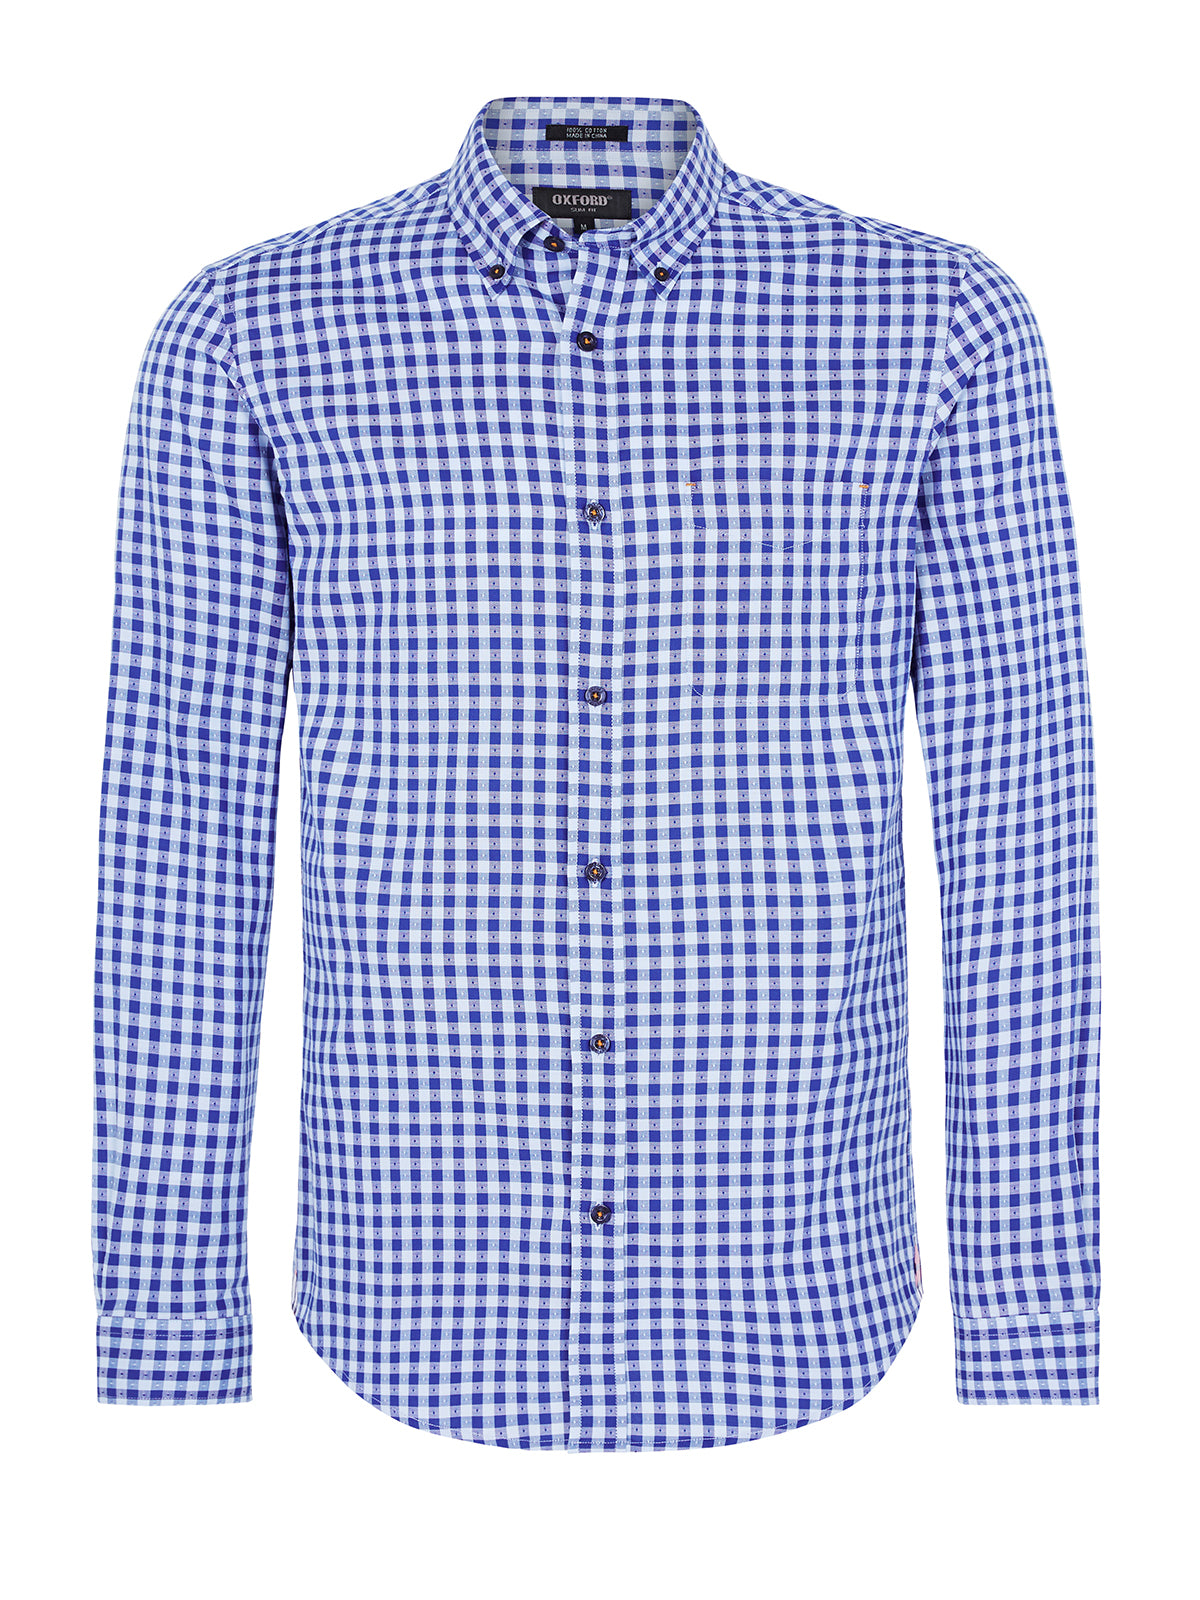 UXBRIDGE CHECKED SHIRT SKY/BLUE